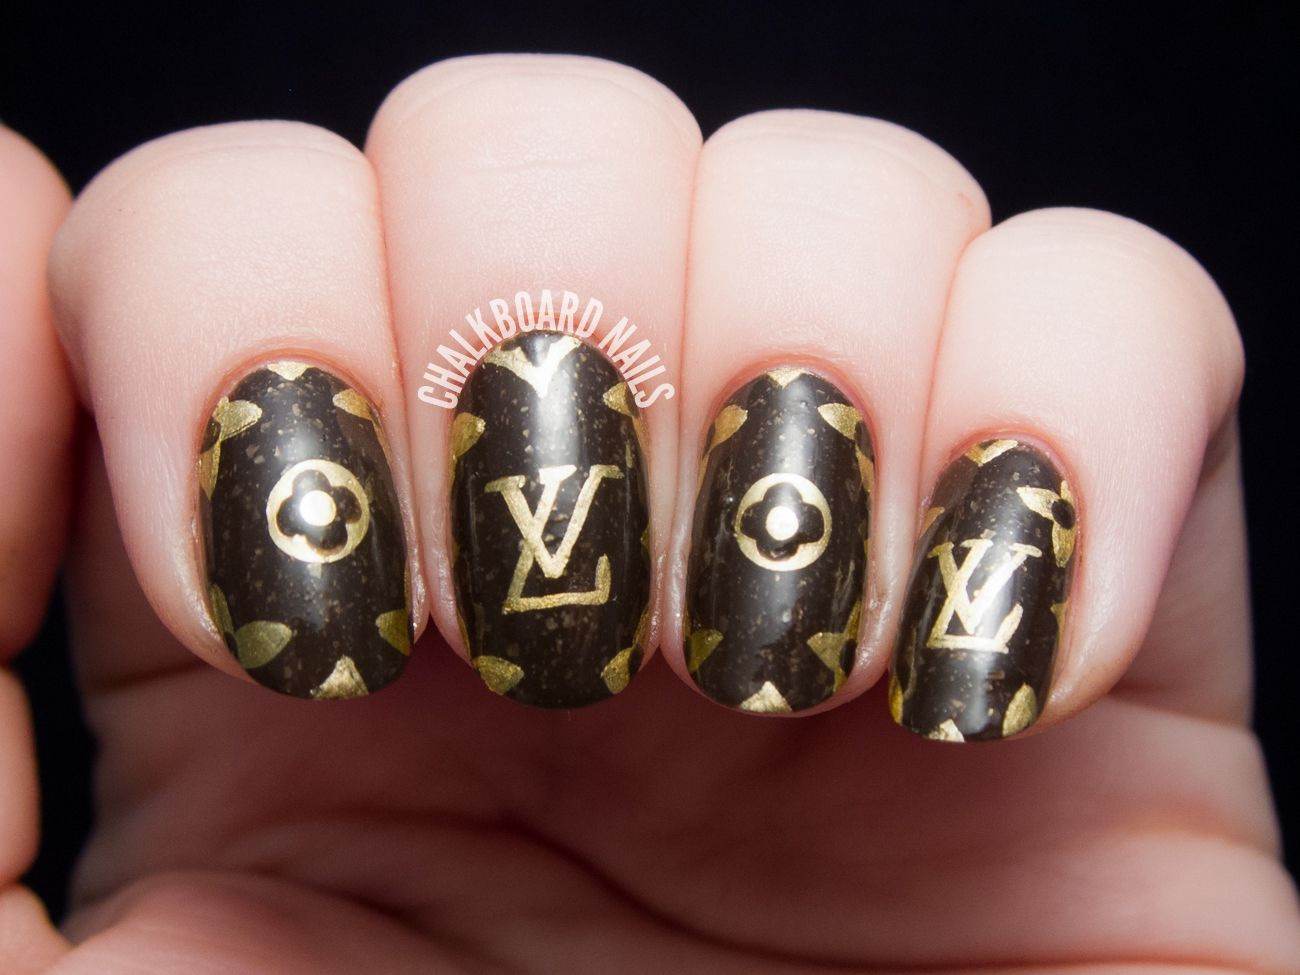 louis-vuitton-freehand-nail-art-1.jpg (1300×975) | My Style ...